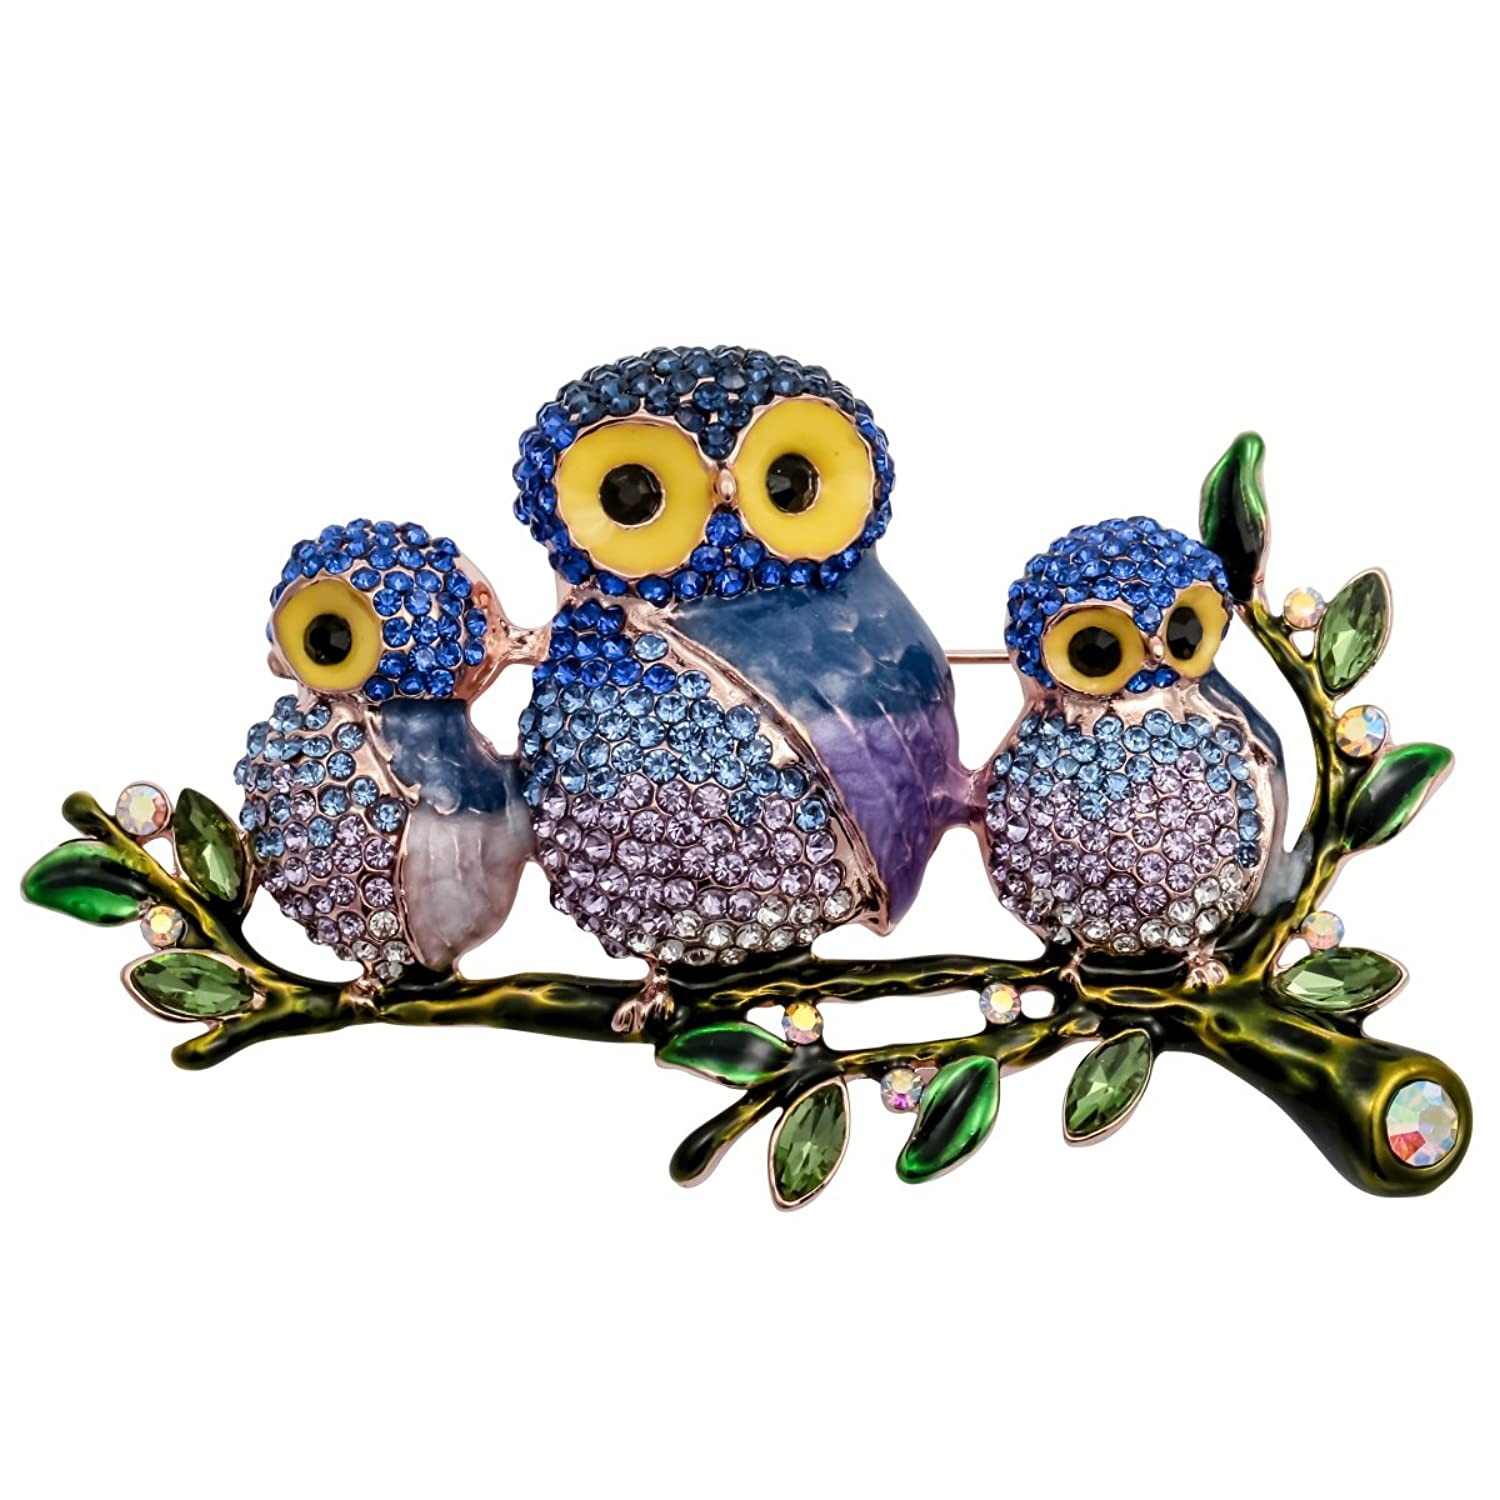 Szxc Jewelry Ctystal Cute Owl Birds Branches Animal Collection Brooch Pin Women Teen Girl